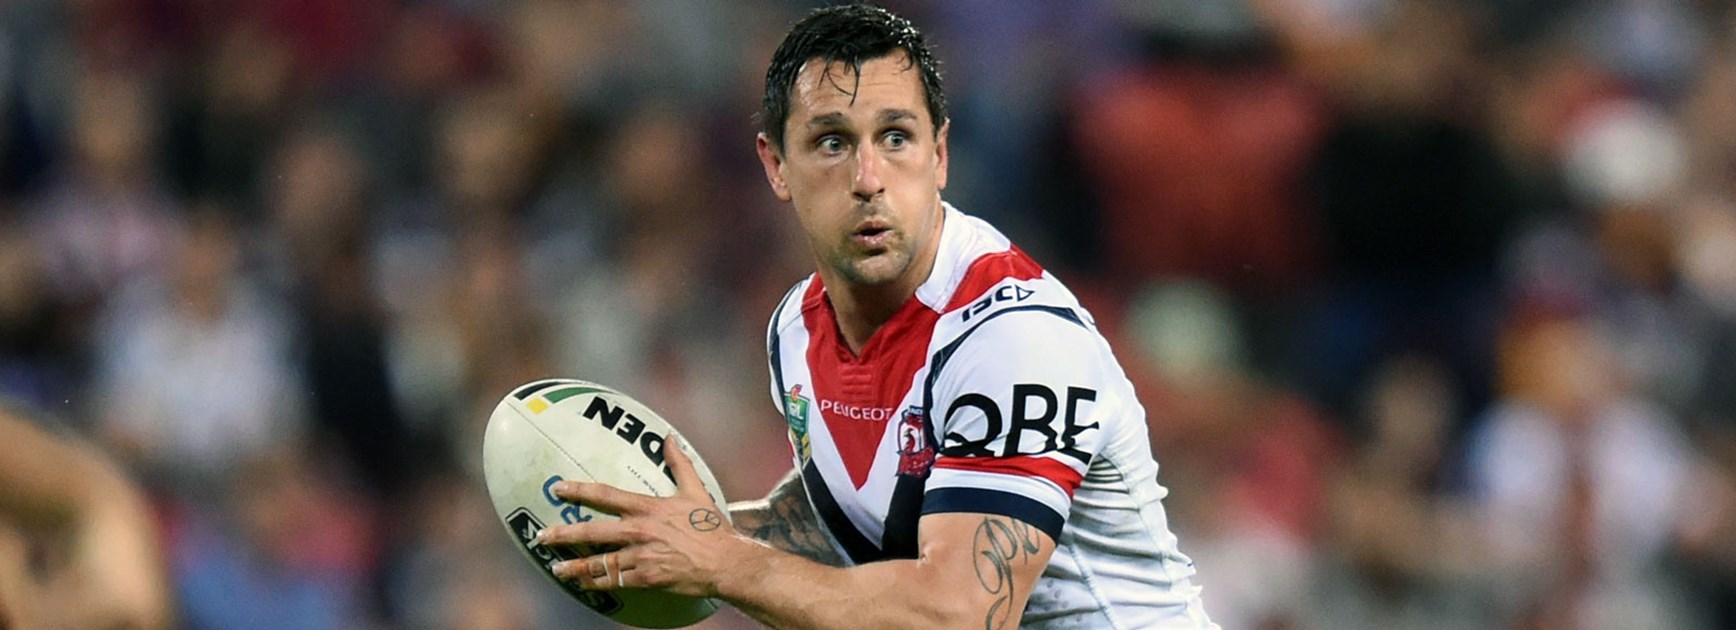 Roosters halfback Mitchell Pearce against the Broncos in Round 26.